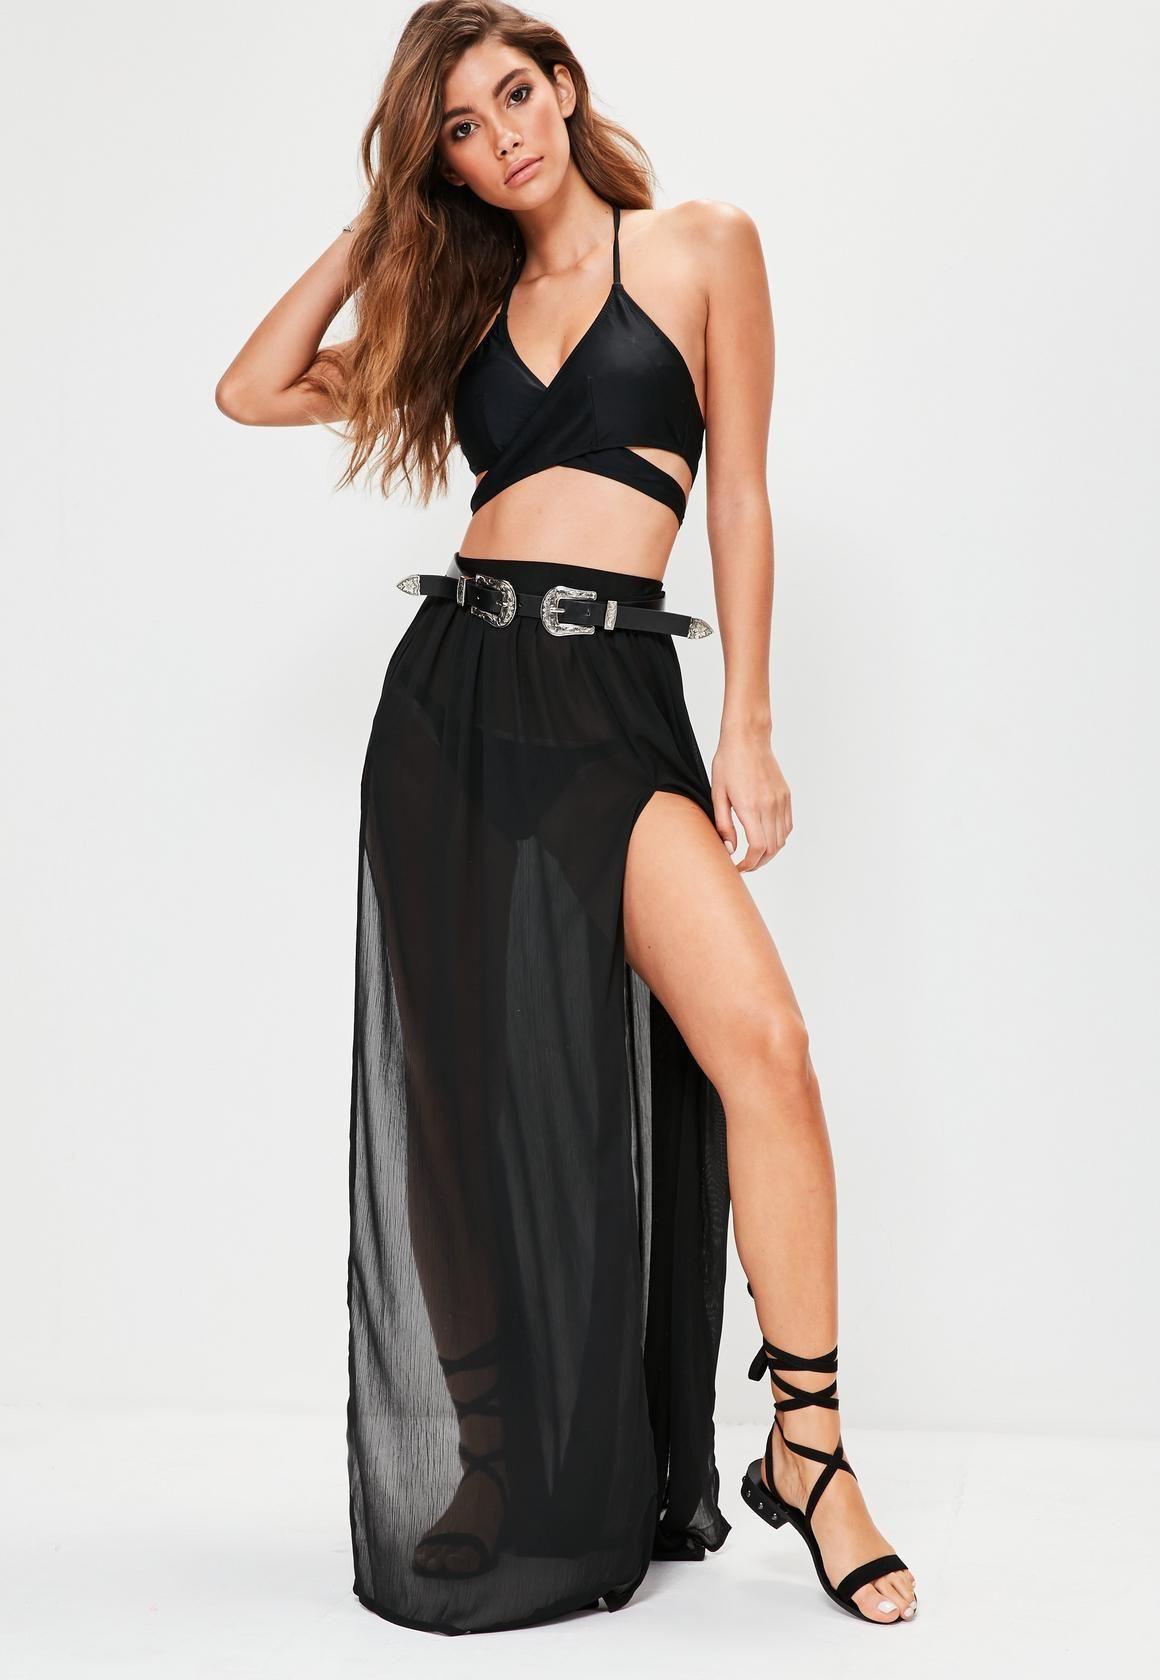 caaf0647e8 Black Chiffon Double Split Beach Maxi Skirt - Missguided | Rolling ...